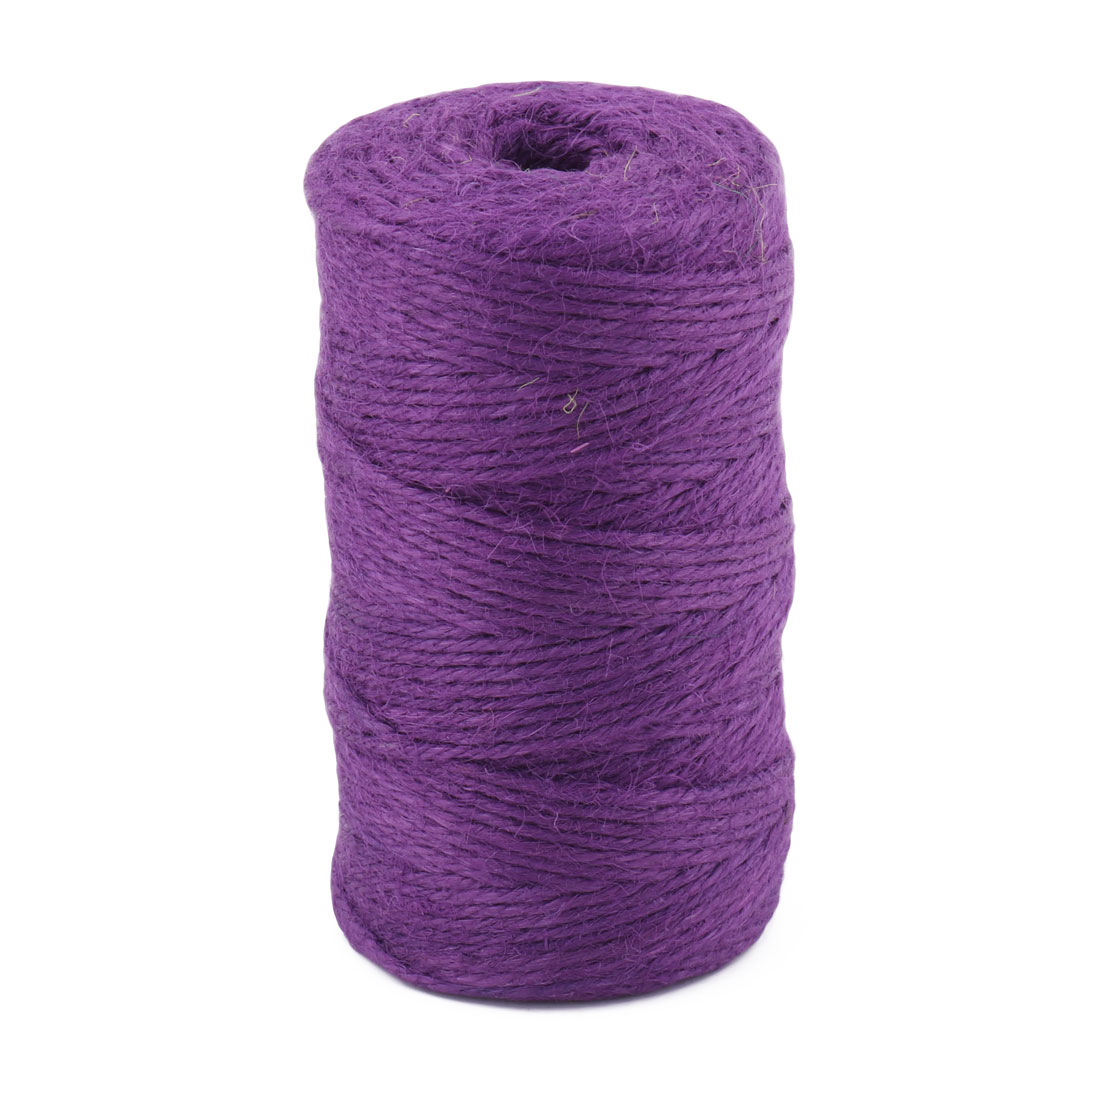 Holiday Wedding Decoration Burlap Craft Ribbon Rope String Purple 100M Length